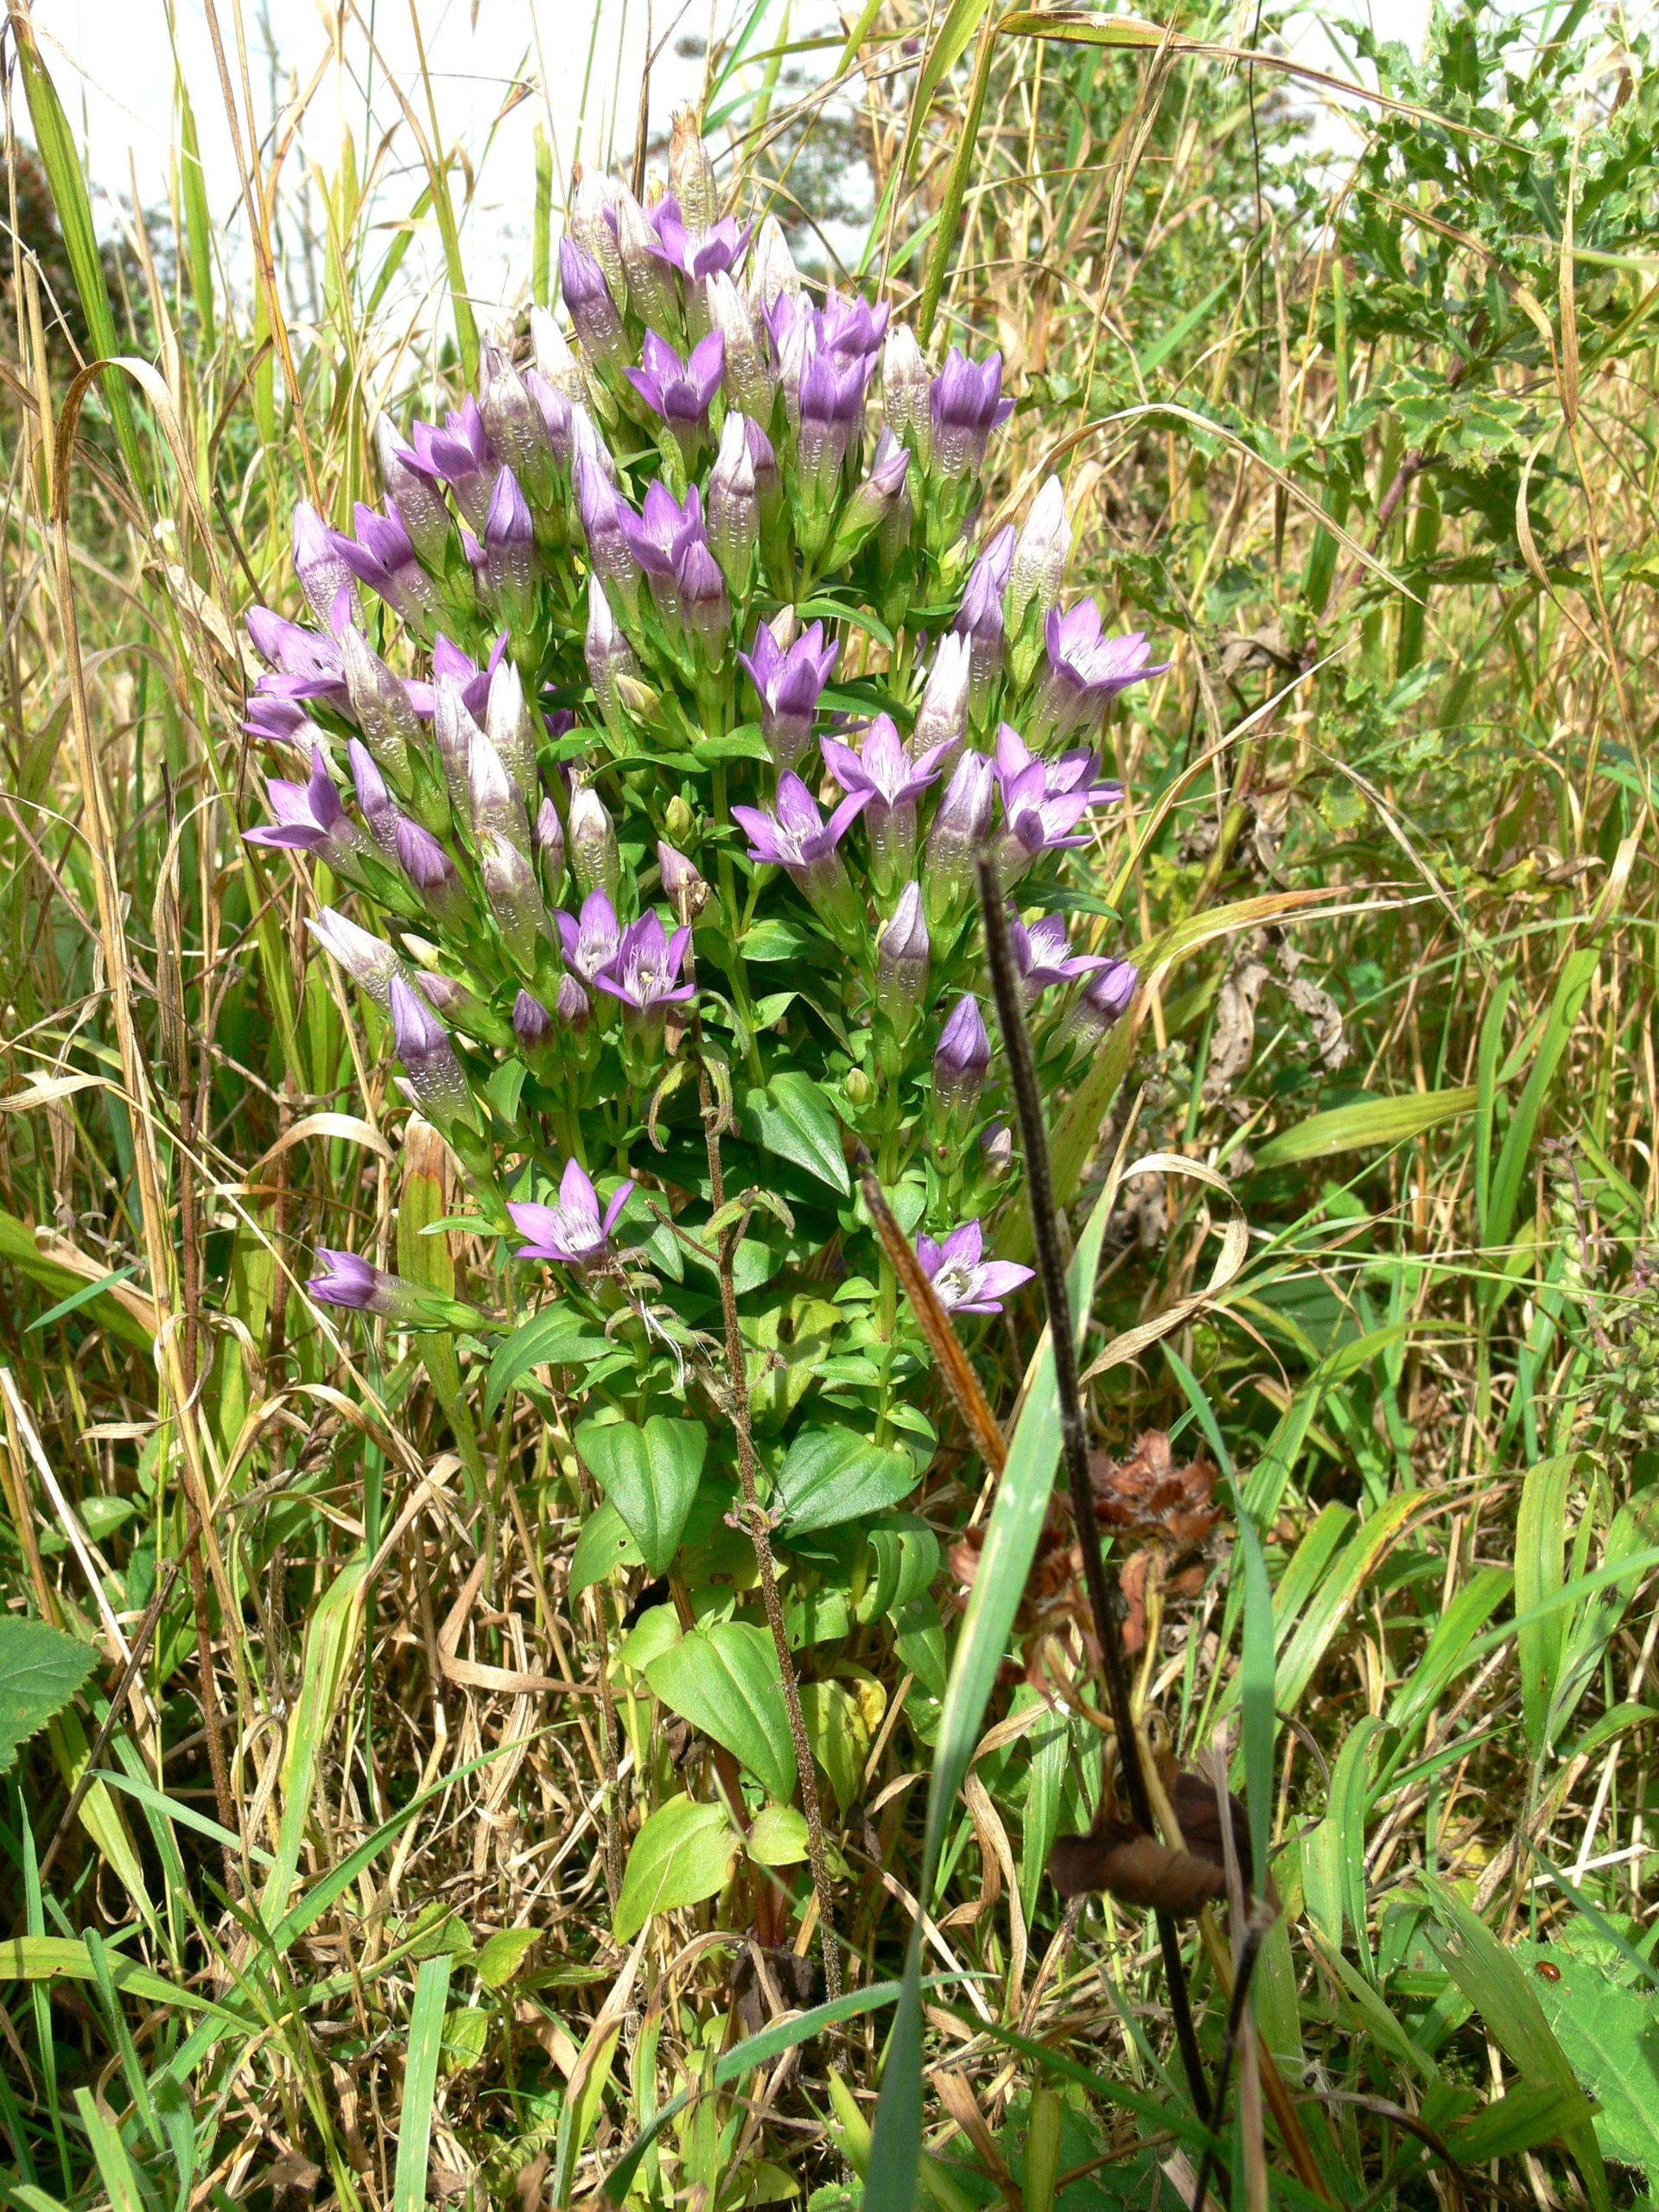 The wood has seen some splendid specimens of the Autumn Gentian up to 30cm tall.